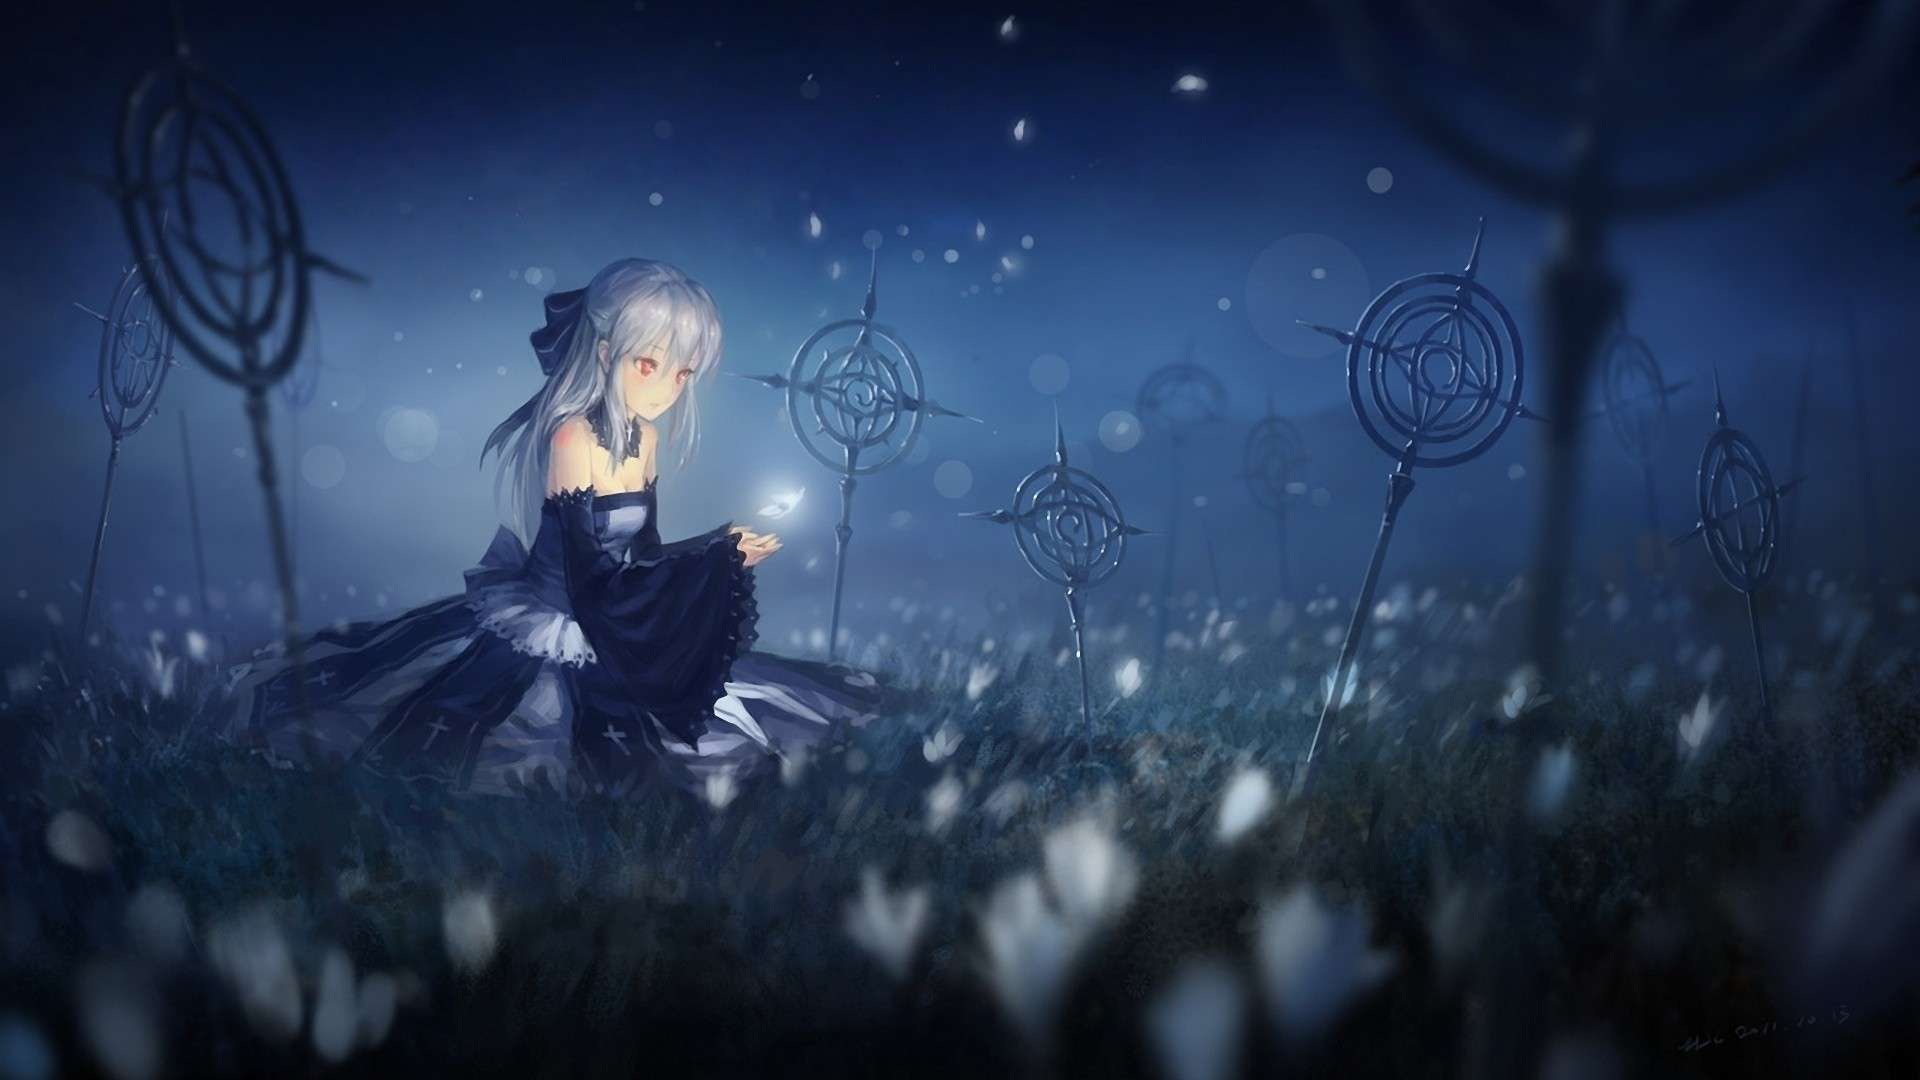 Night Anime Girl PC Wallpaper HD